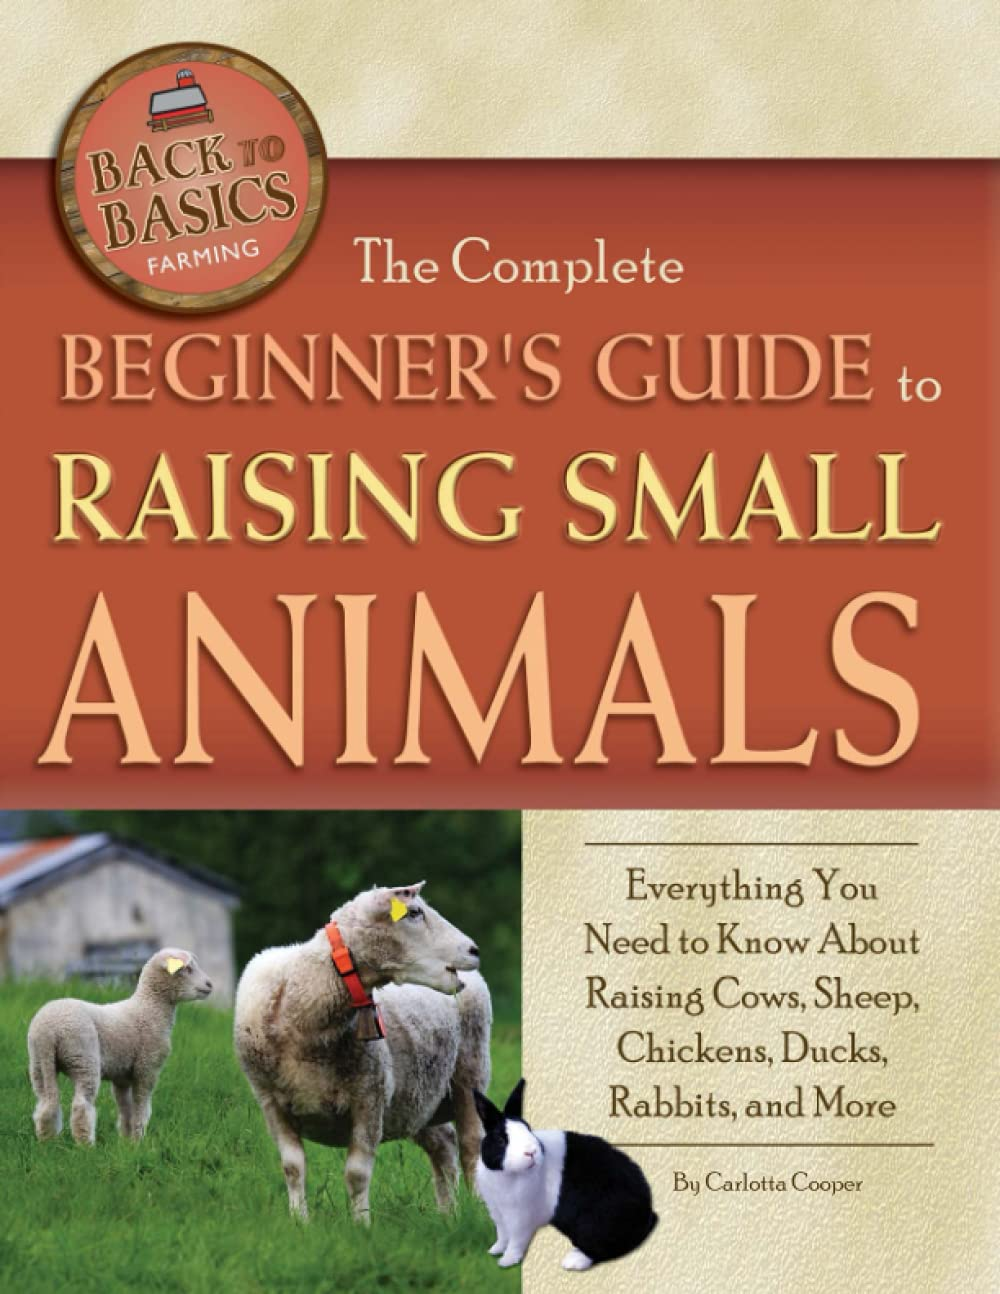 The Complete Beginner's Guide to Raising Small Animals